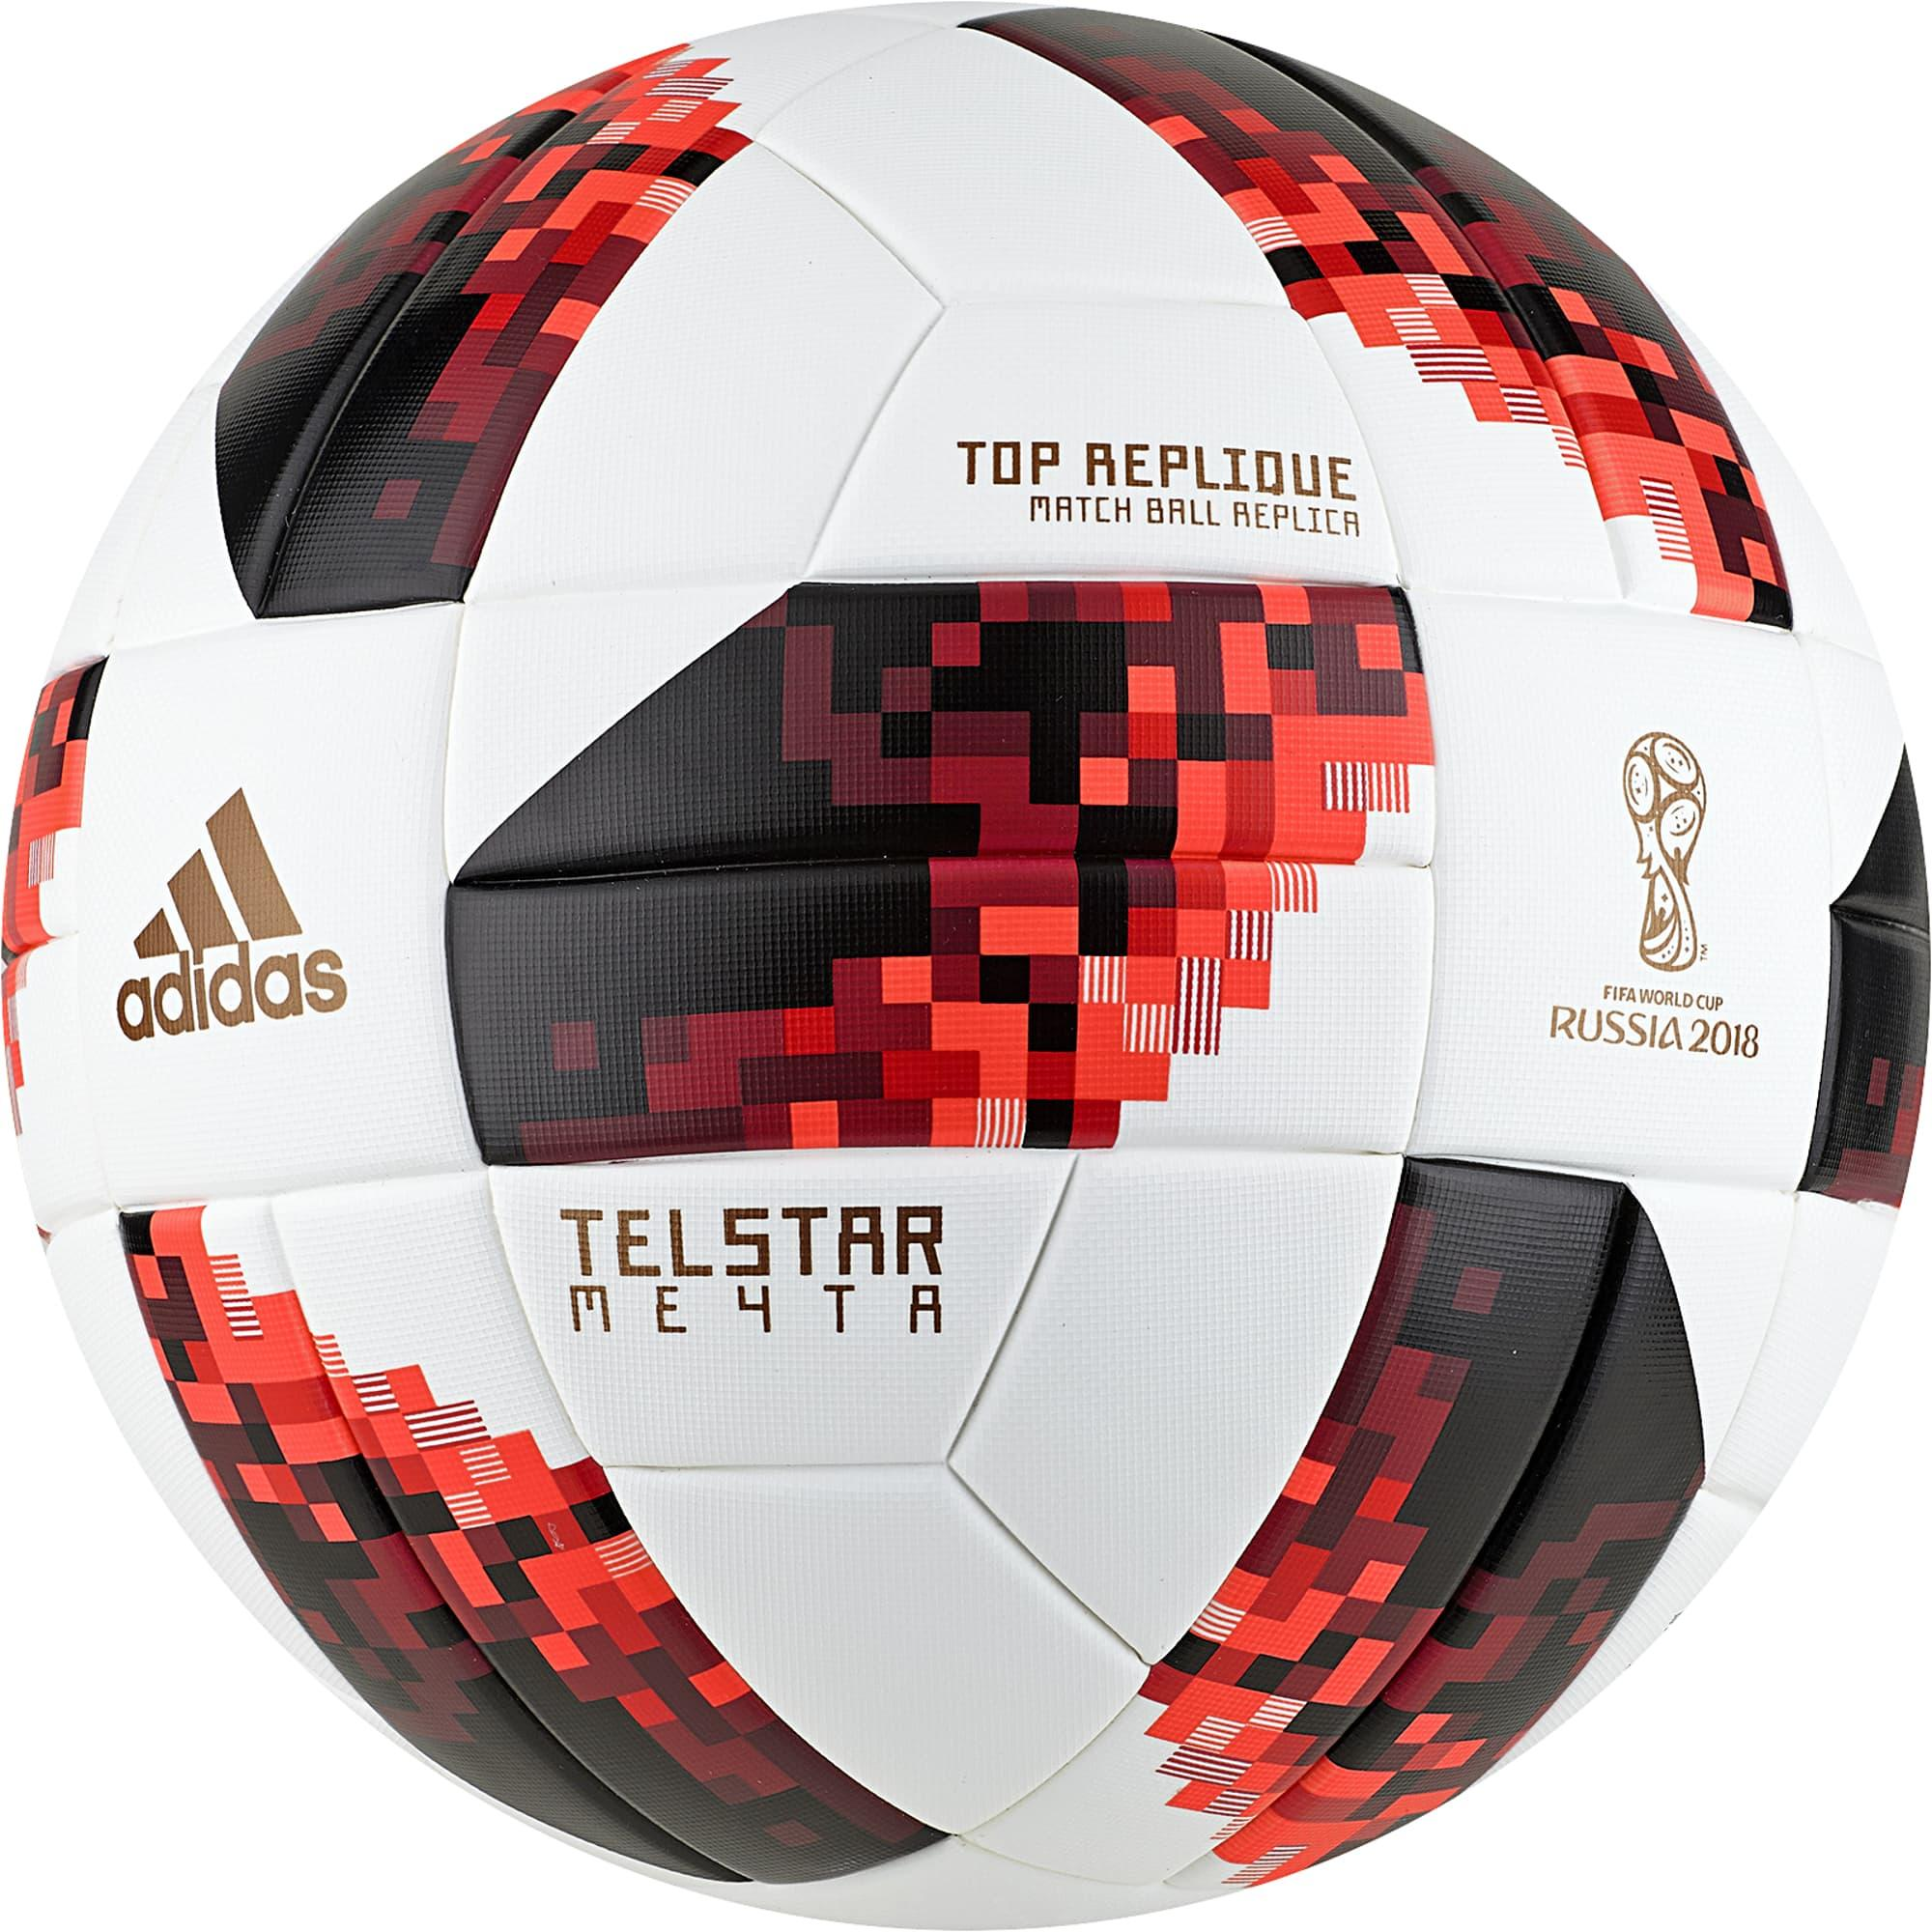 Telstar Adidas World Cup Russia 18 Knock Out Top Replique Soccer Ball (4 (ages 6 12))